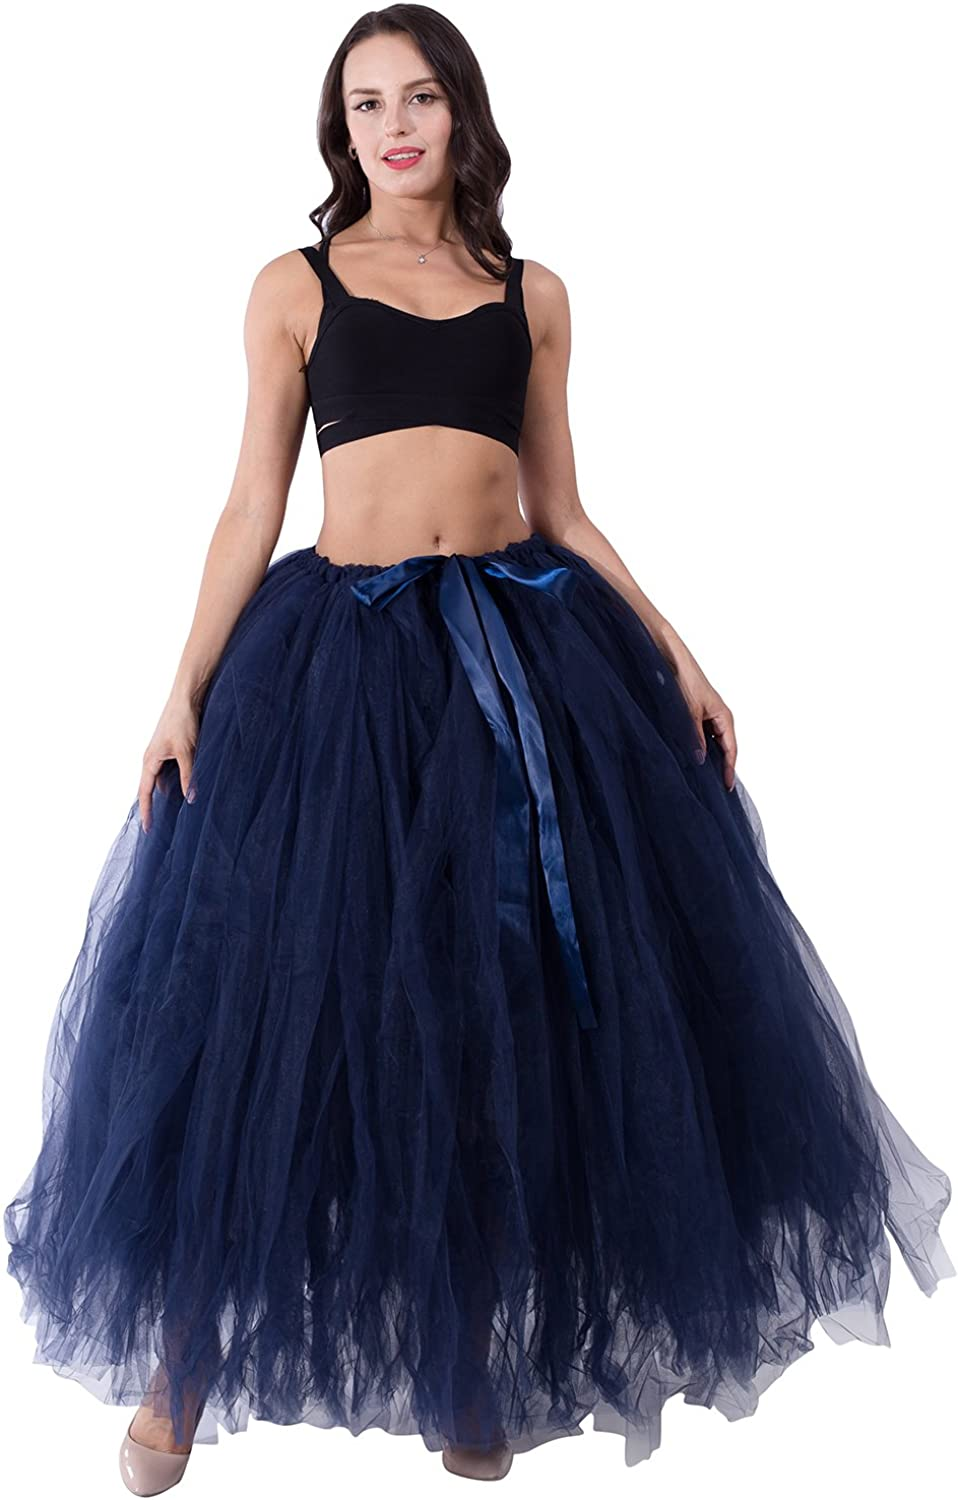 Ankle Length Ball Gown Layers Soft Tulle Skirt for Women